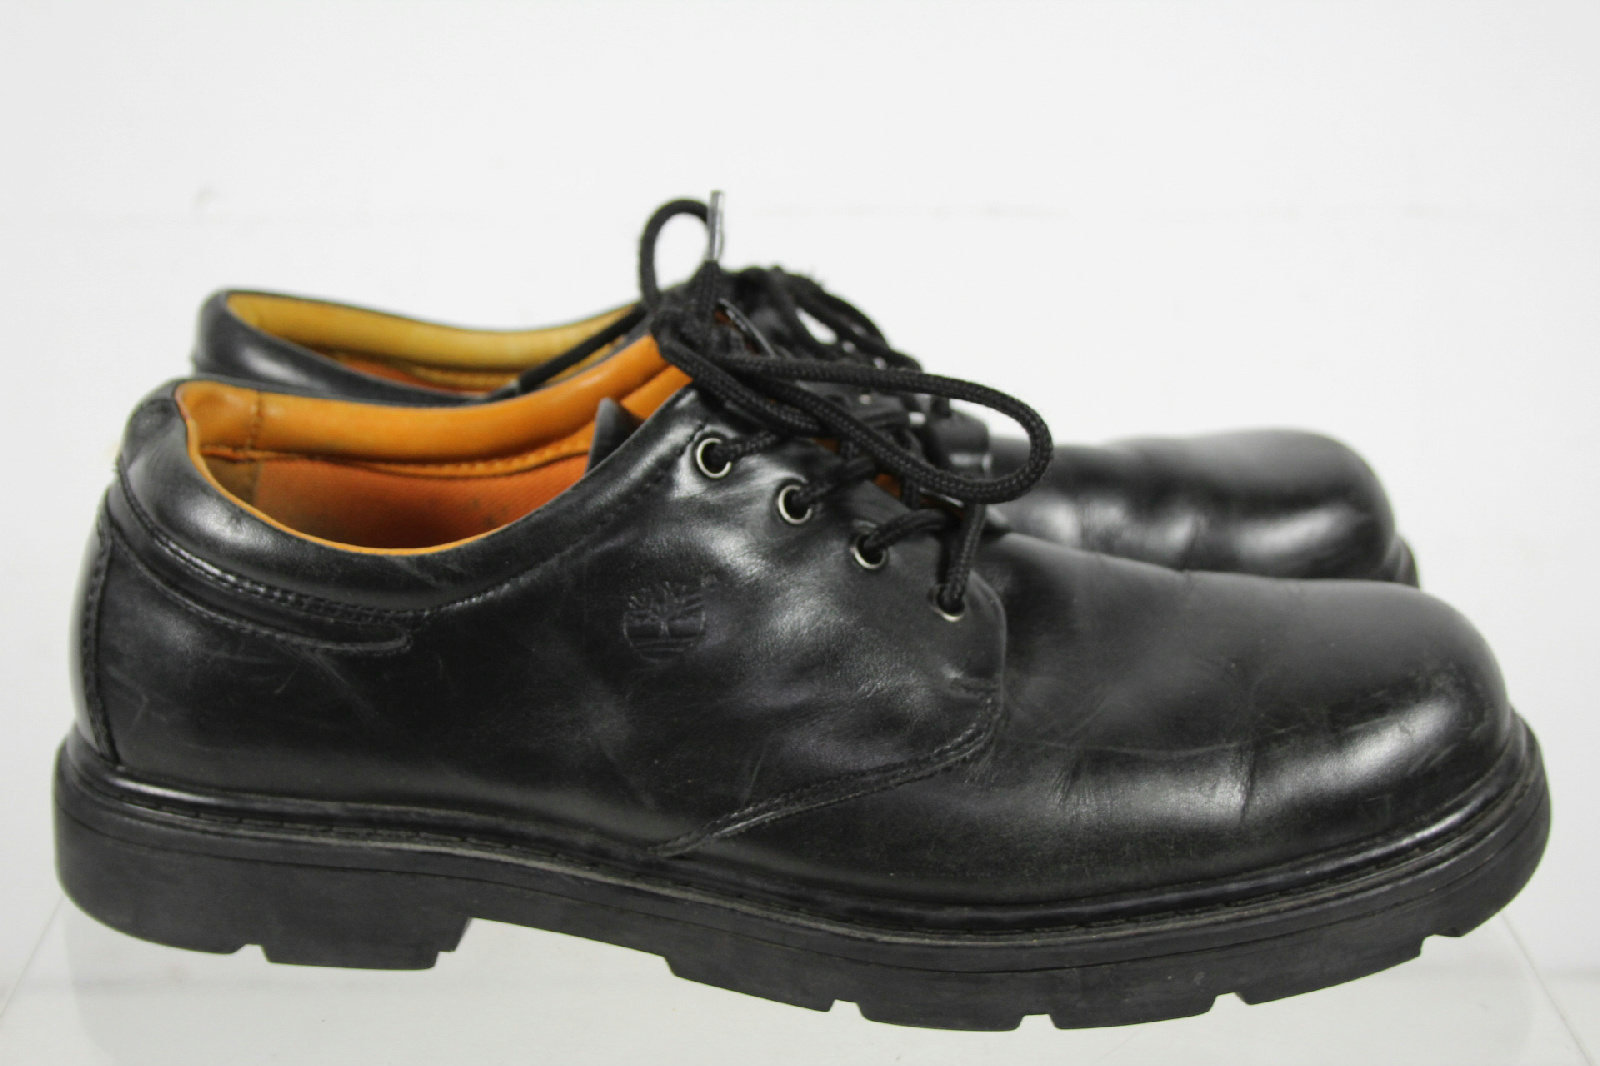 timberland solid black toe laces low top shoes size